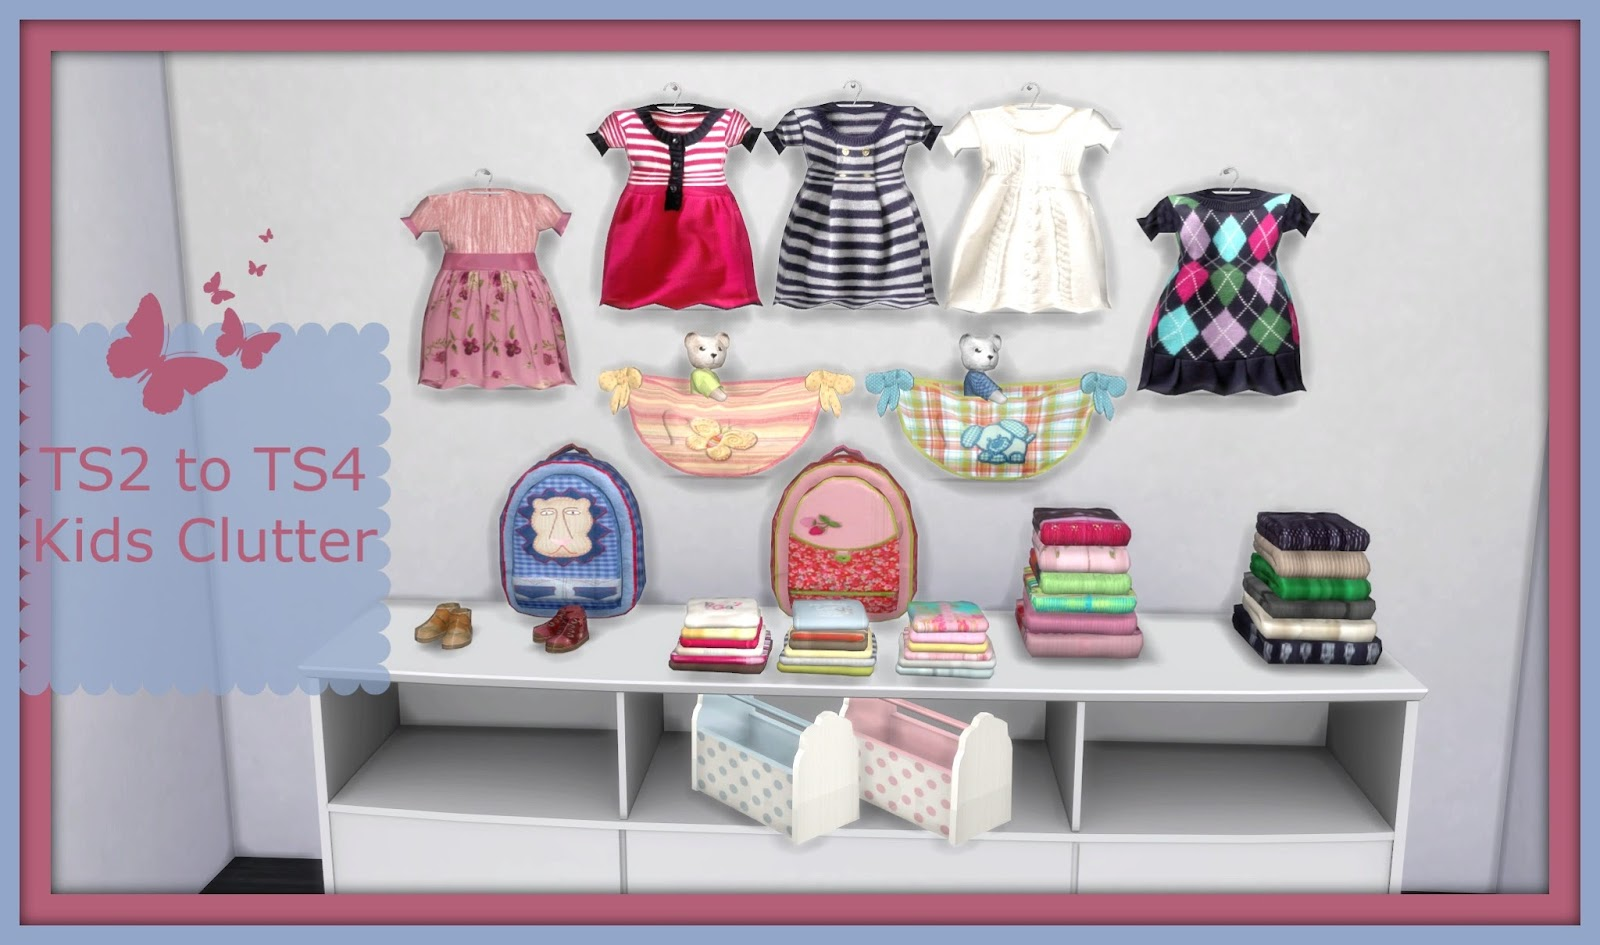 Sims 4 - TS2 to TS4 Suza Kids Clutter - Dinha